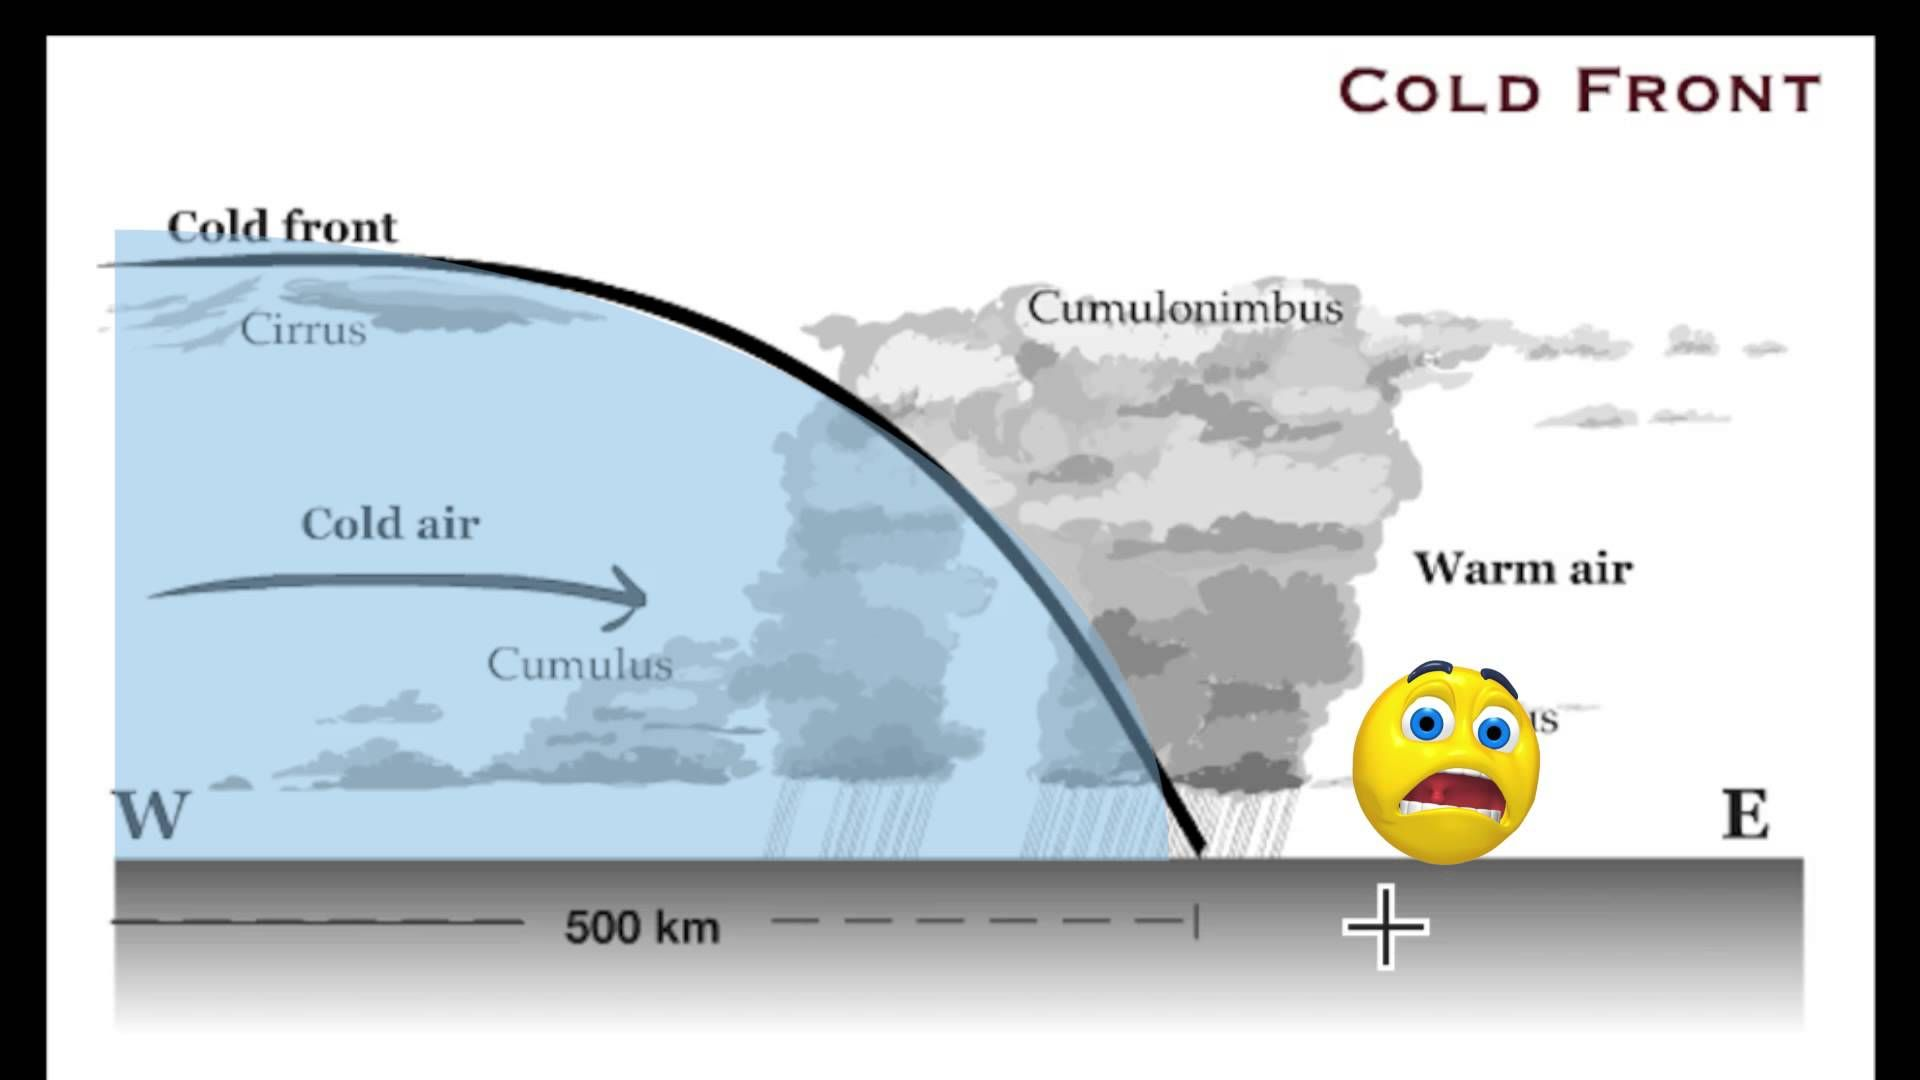 Warm And Cold Fronts Explained With Great Visuals